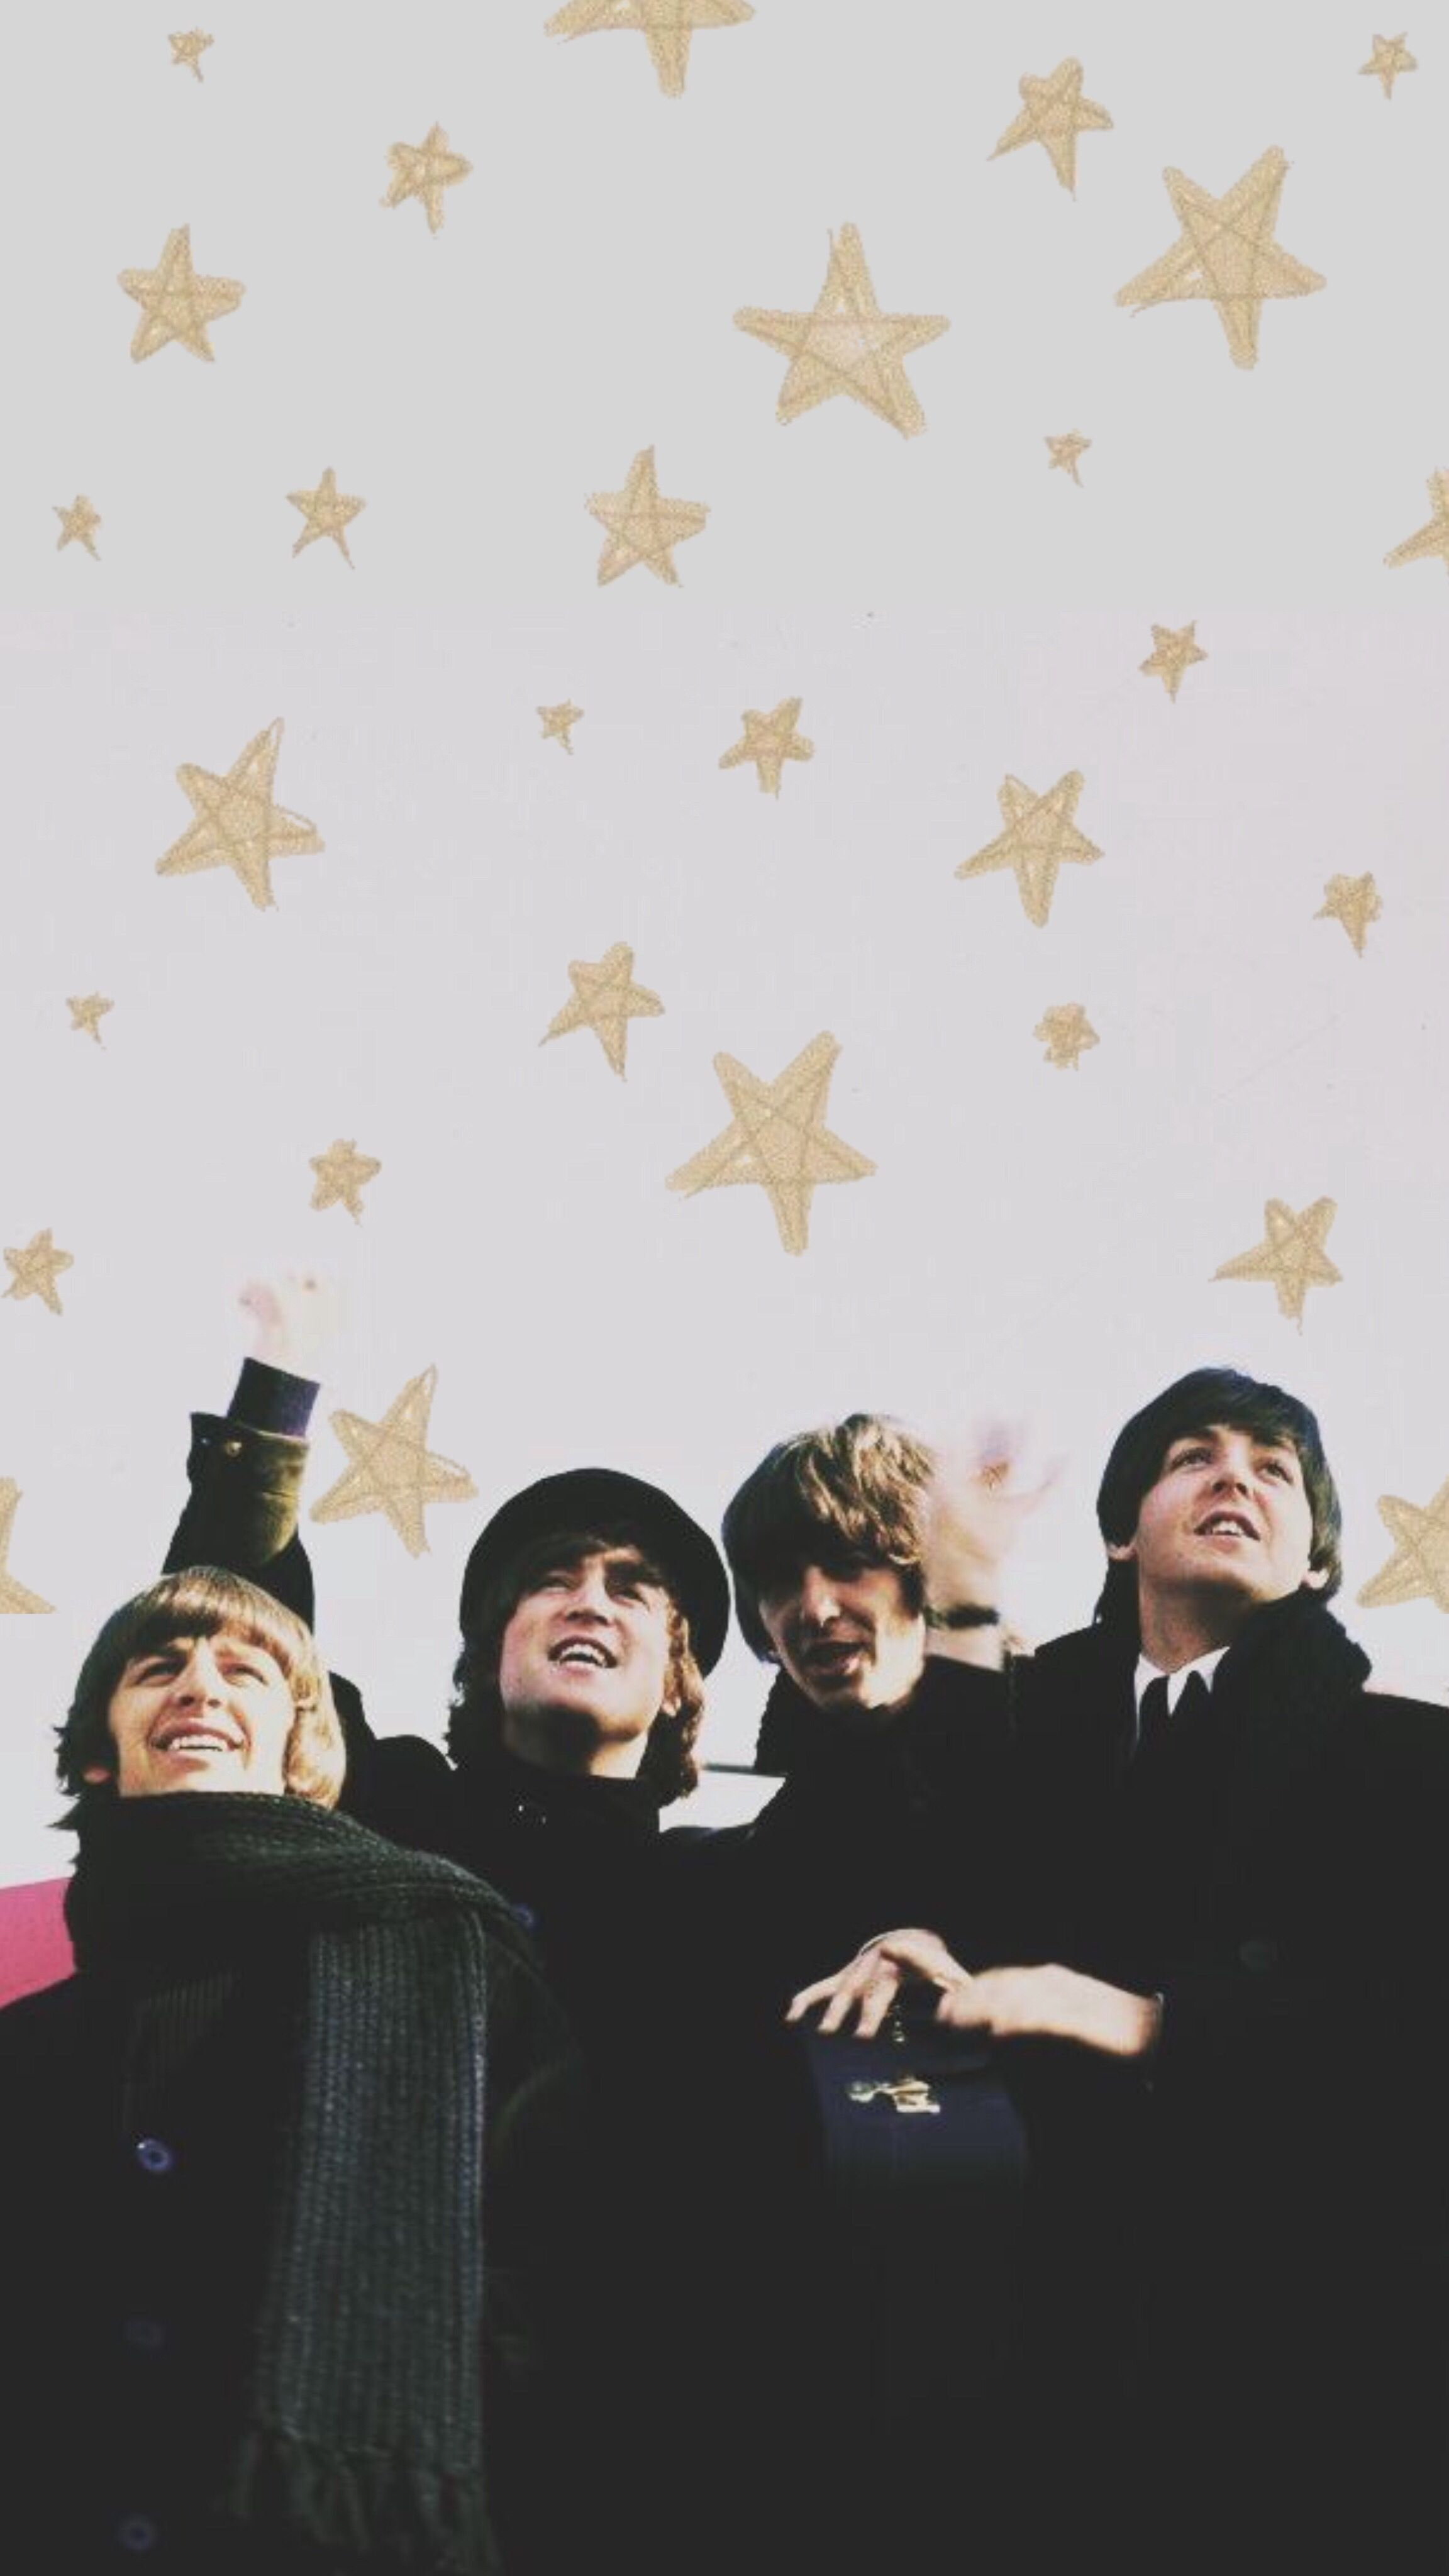 Pin By Chase On The Beatles Beatles Wallpaper Beatles